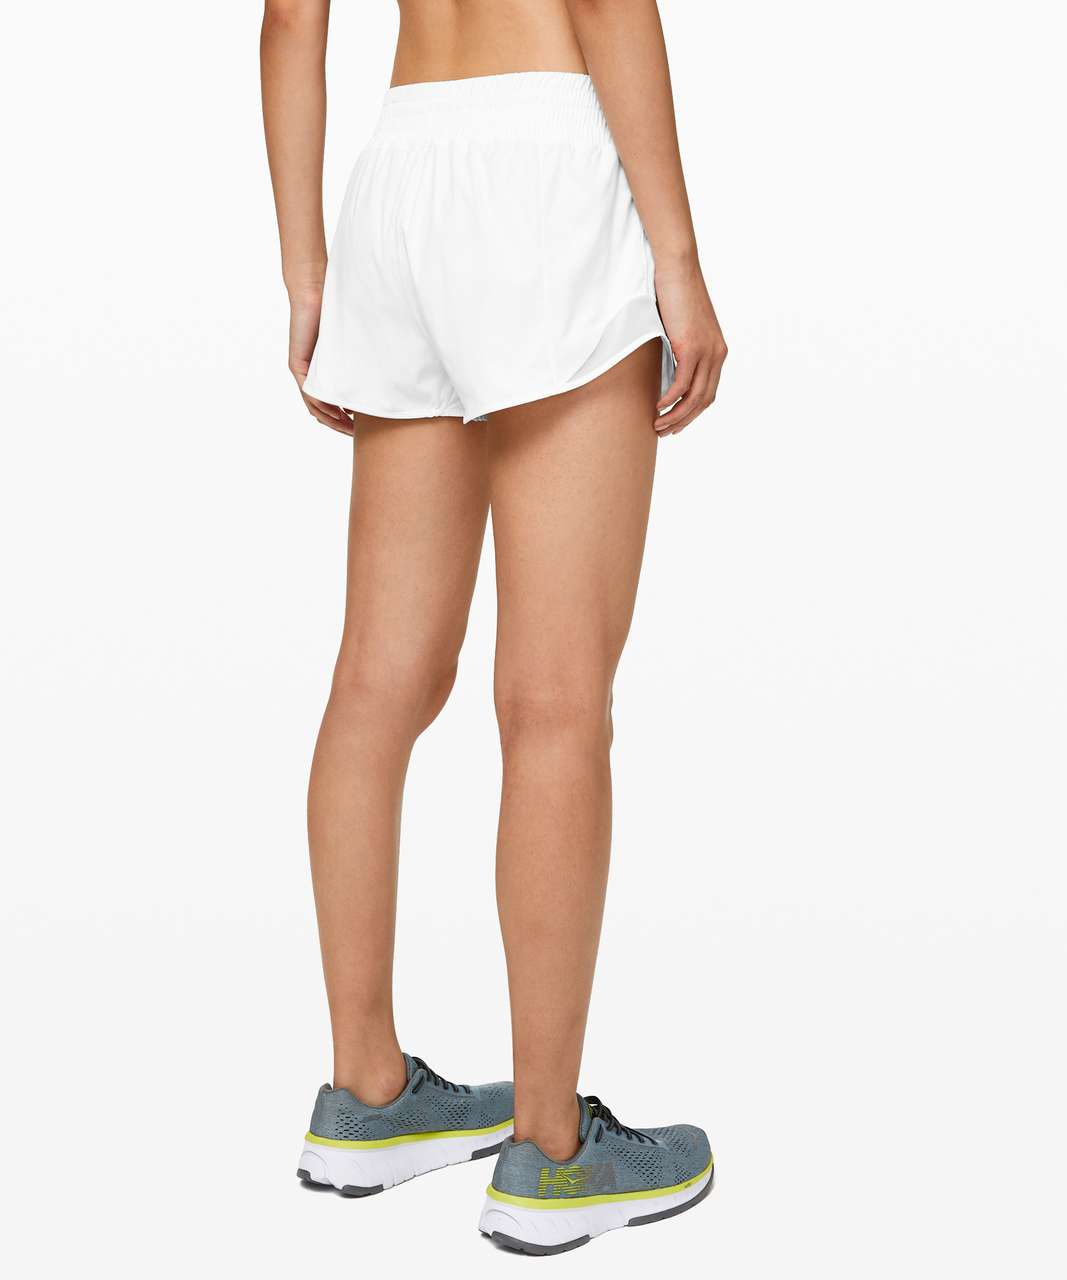 "Lululemon Hotty Hot Short *High-Rise 2.5"" - White"